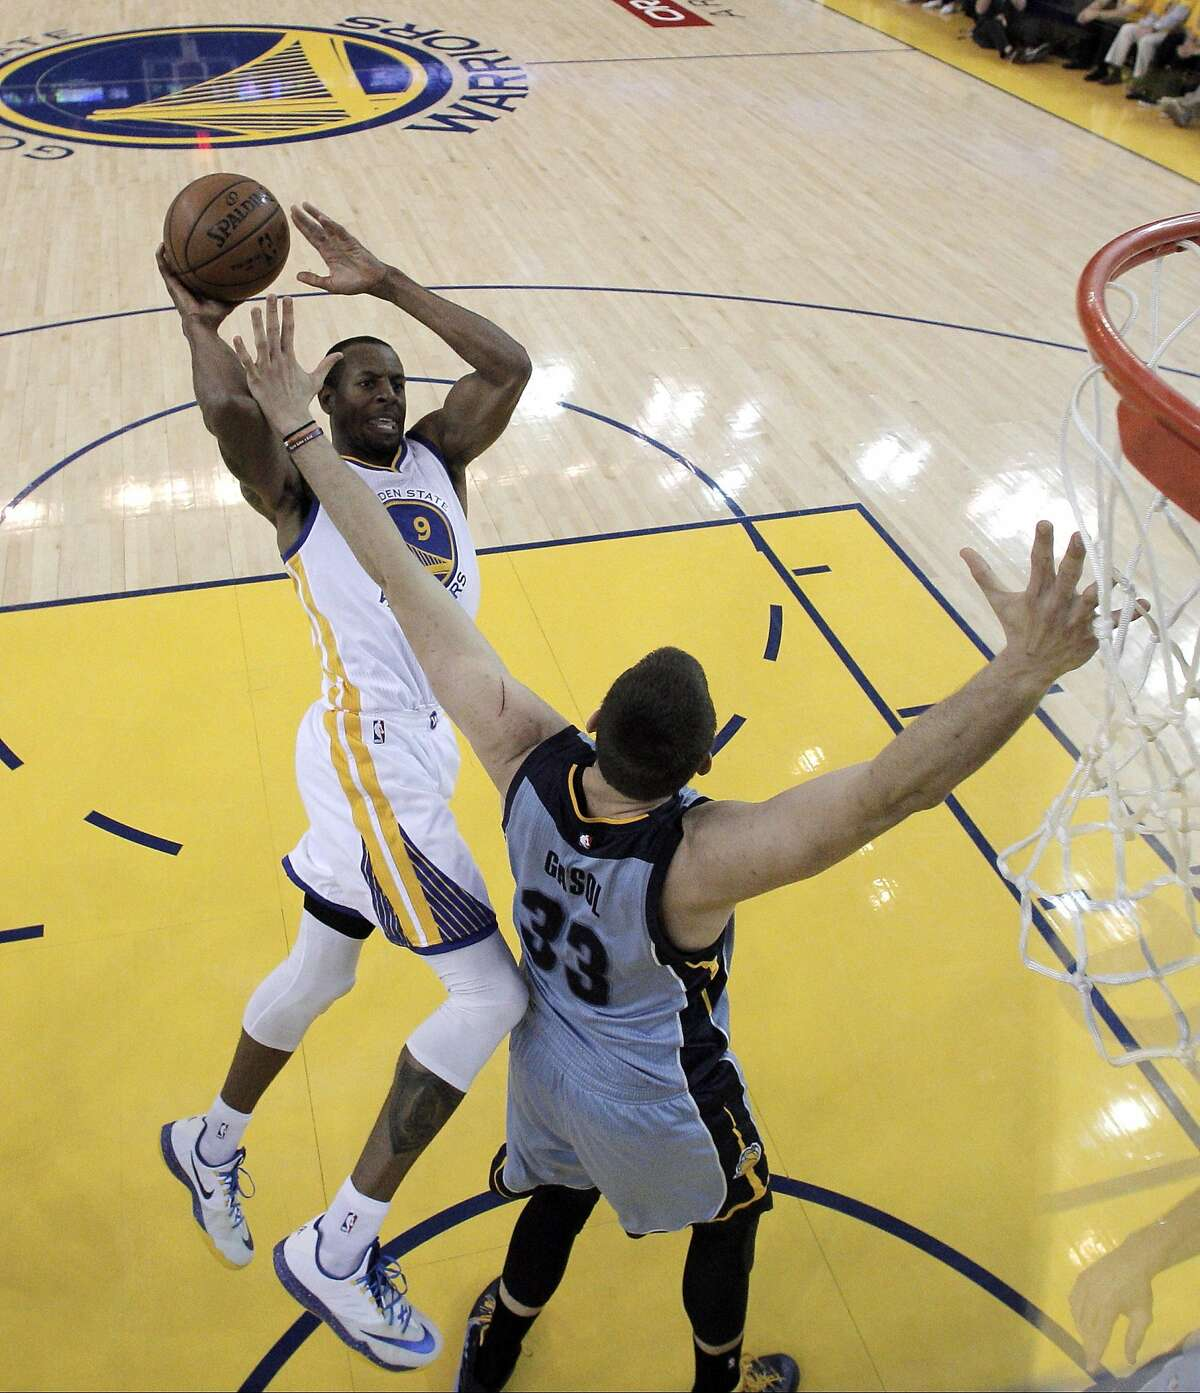 Andrew Iguodala (9) puts in a shot over Marc Gasol (33)) In the first half. The Golden State Warriors played the Memphis Grizzlies in Game 5 of the Western Conference Semifinals at Oracle Arena in Oakland, Calif., on Wednesday, May 13, 2015. The Warriors defeated the Grizzlies 98-78.